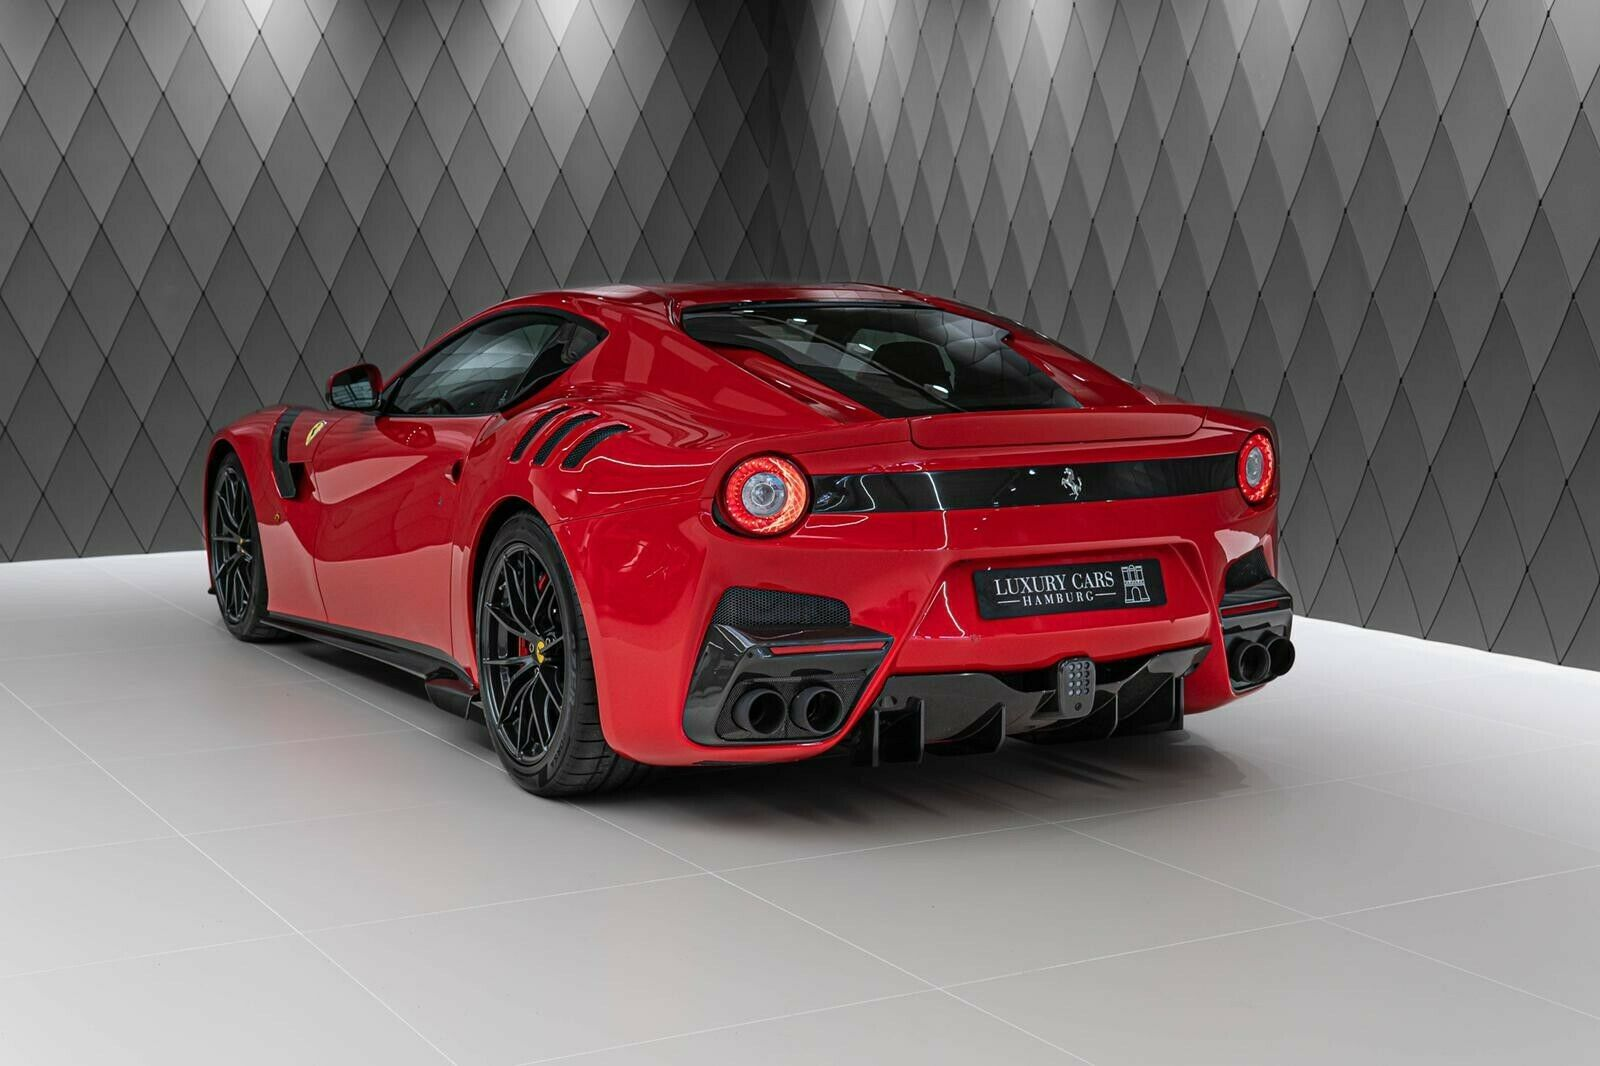 For Sale Ferrari F12 Tdf Luxury Cars Hamburg Germany For Sale On Luxurypulse In 2020 Ferrari F12 Tdf Ferrari F12 Ferrari